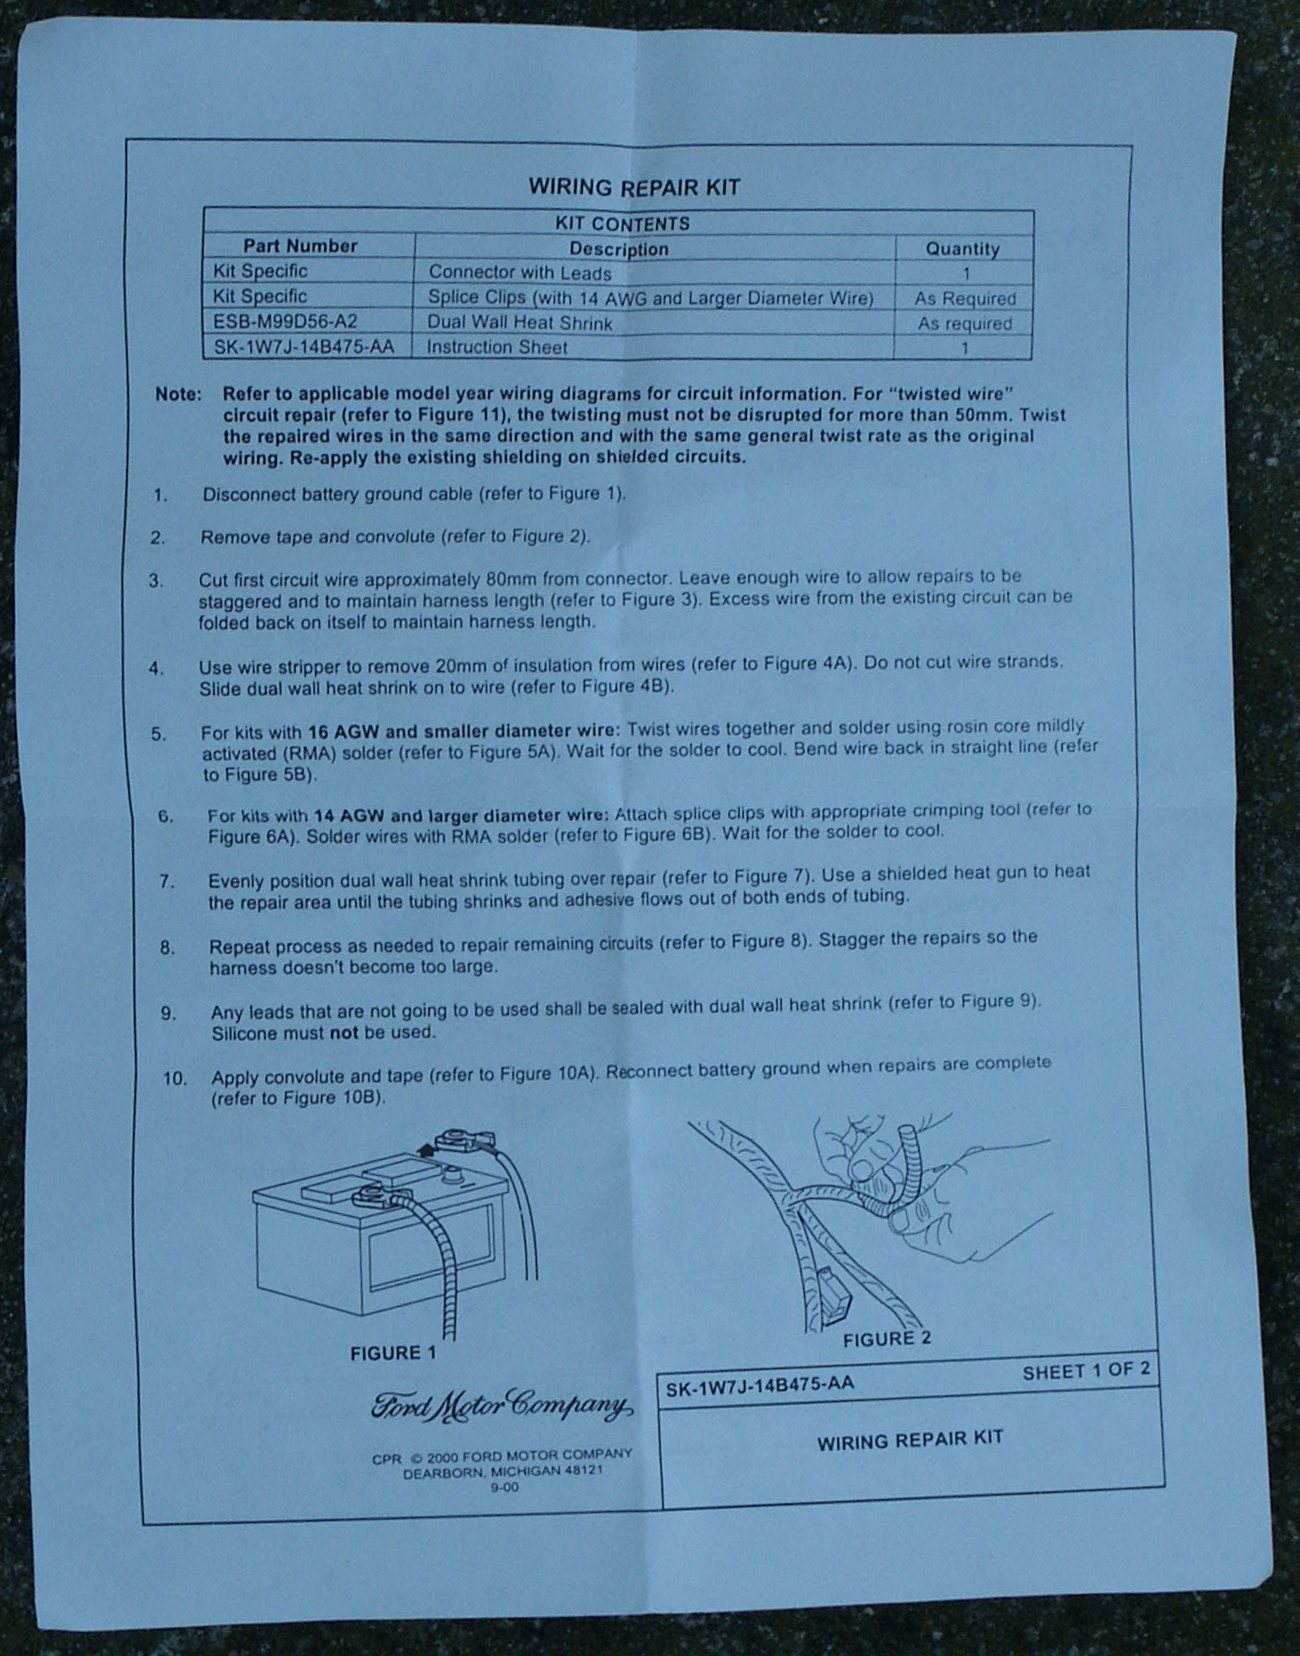 Ford Blower Motor Resistor Pigtail Replacement Wiring Diagram Of Chevy Pick Up And The Instruction Manual That Includes With Kits